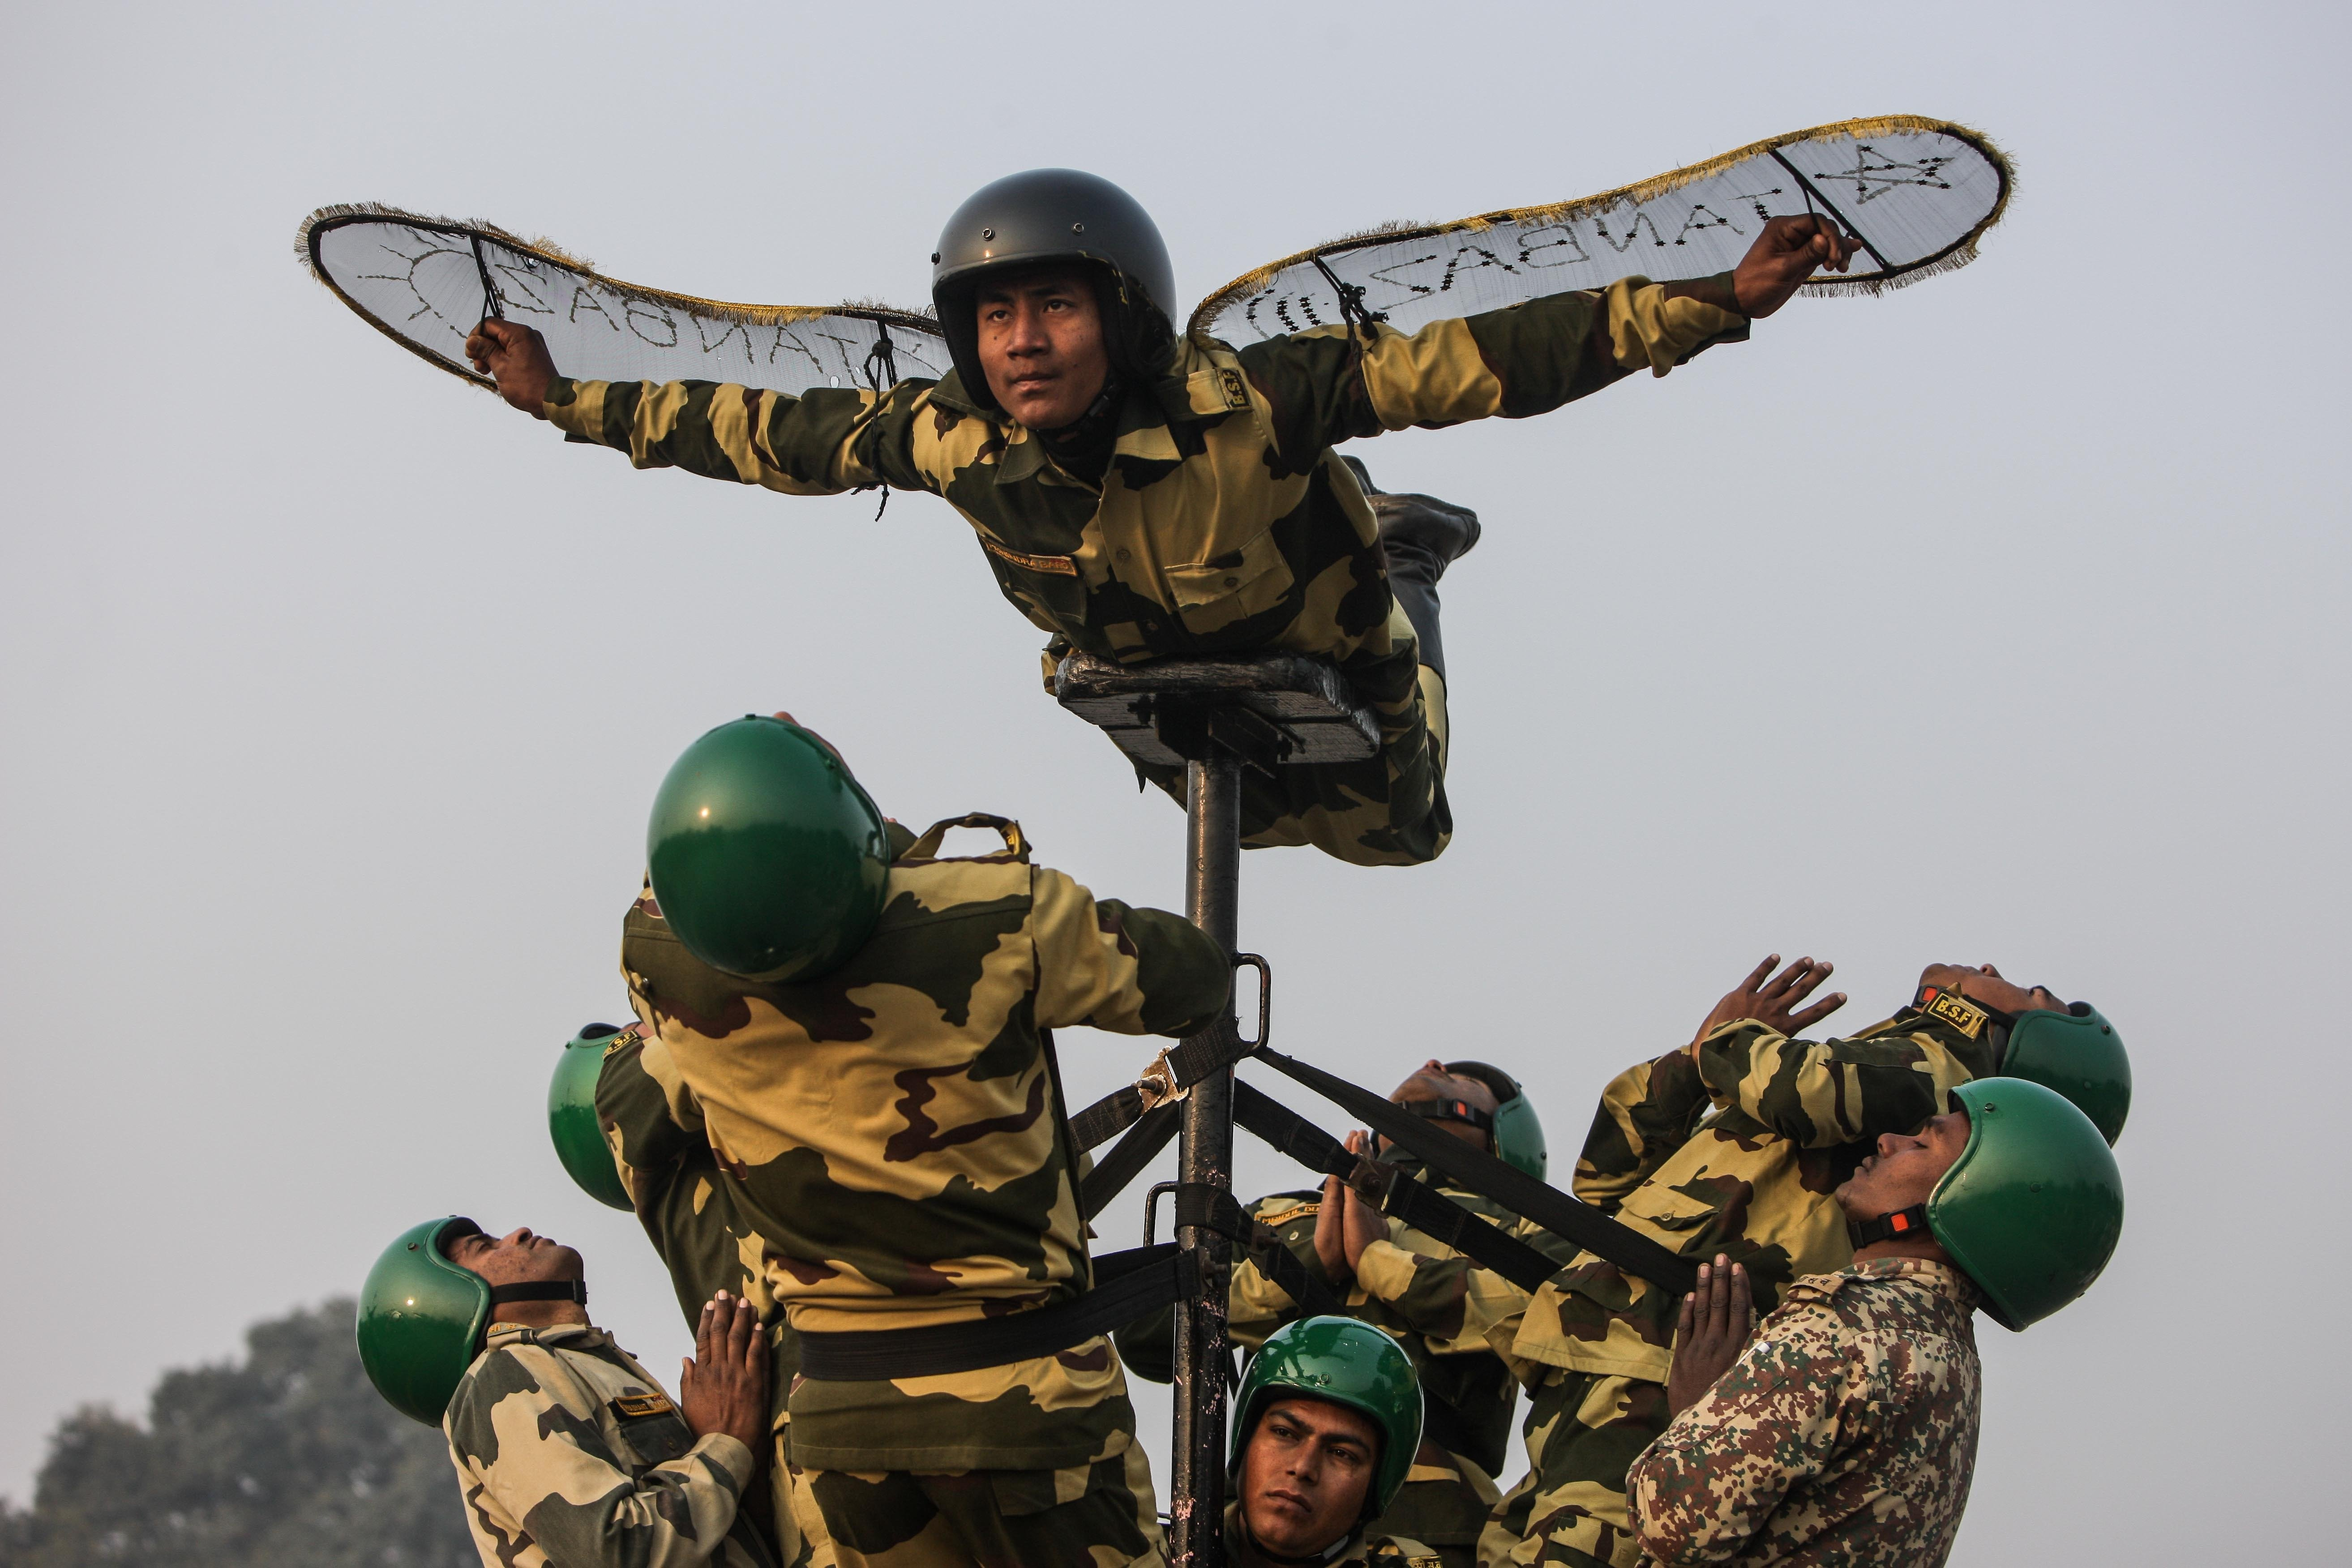 Members of India's Border Security Force rehearse for the Republic Day, 2014, celebrations on Rajpath in New Delhi, India, Jan. 11, 2014.